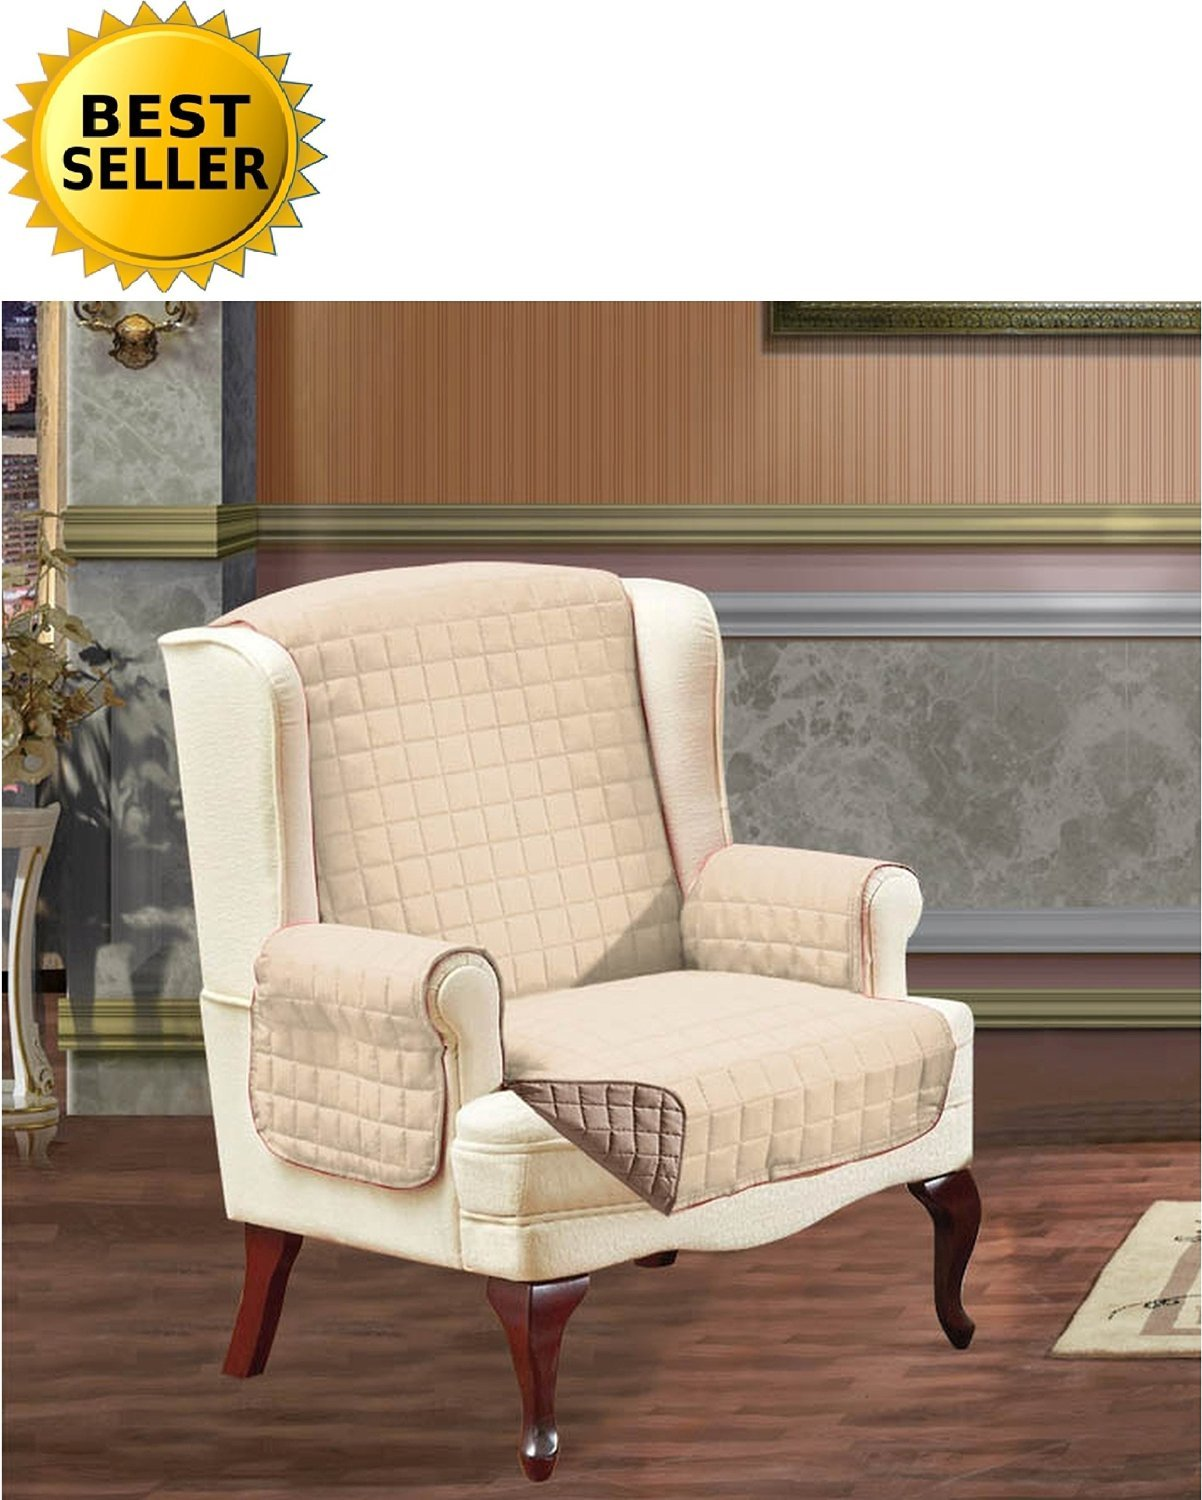 #1 Best Seller Reversible Furniture Protector! Elegance Linen® Luxury Slipcover/Furniture Protector Great for Pets & Children with STRAPS TO PREVENT SLIPPING OFF, Wing Chair, Cream/Taupe